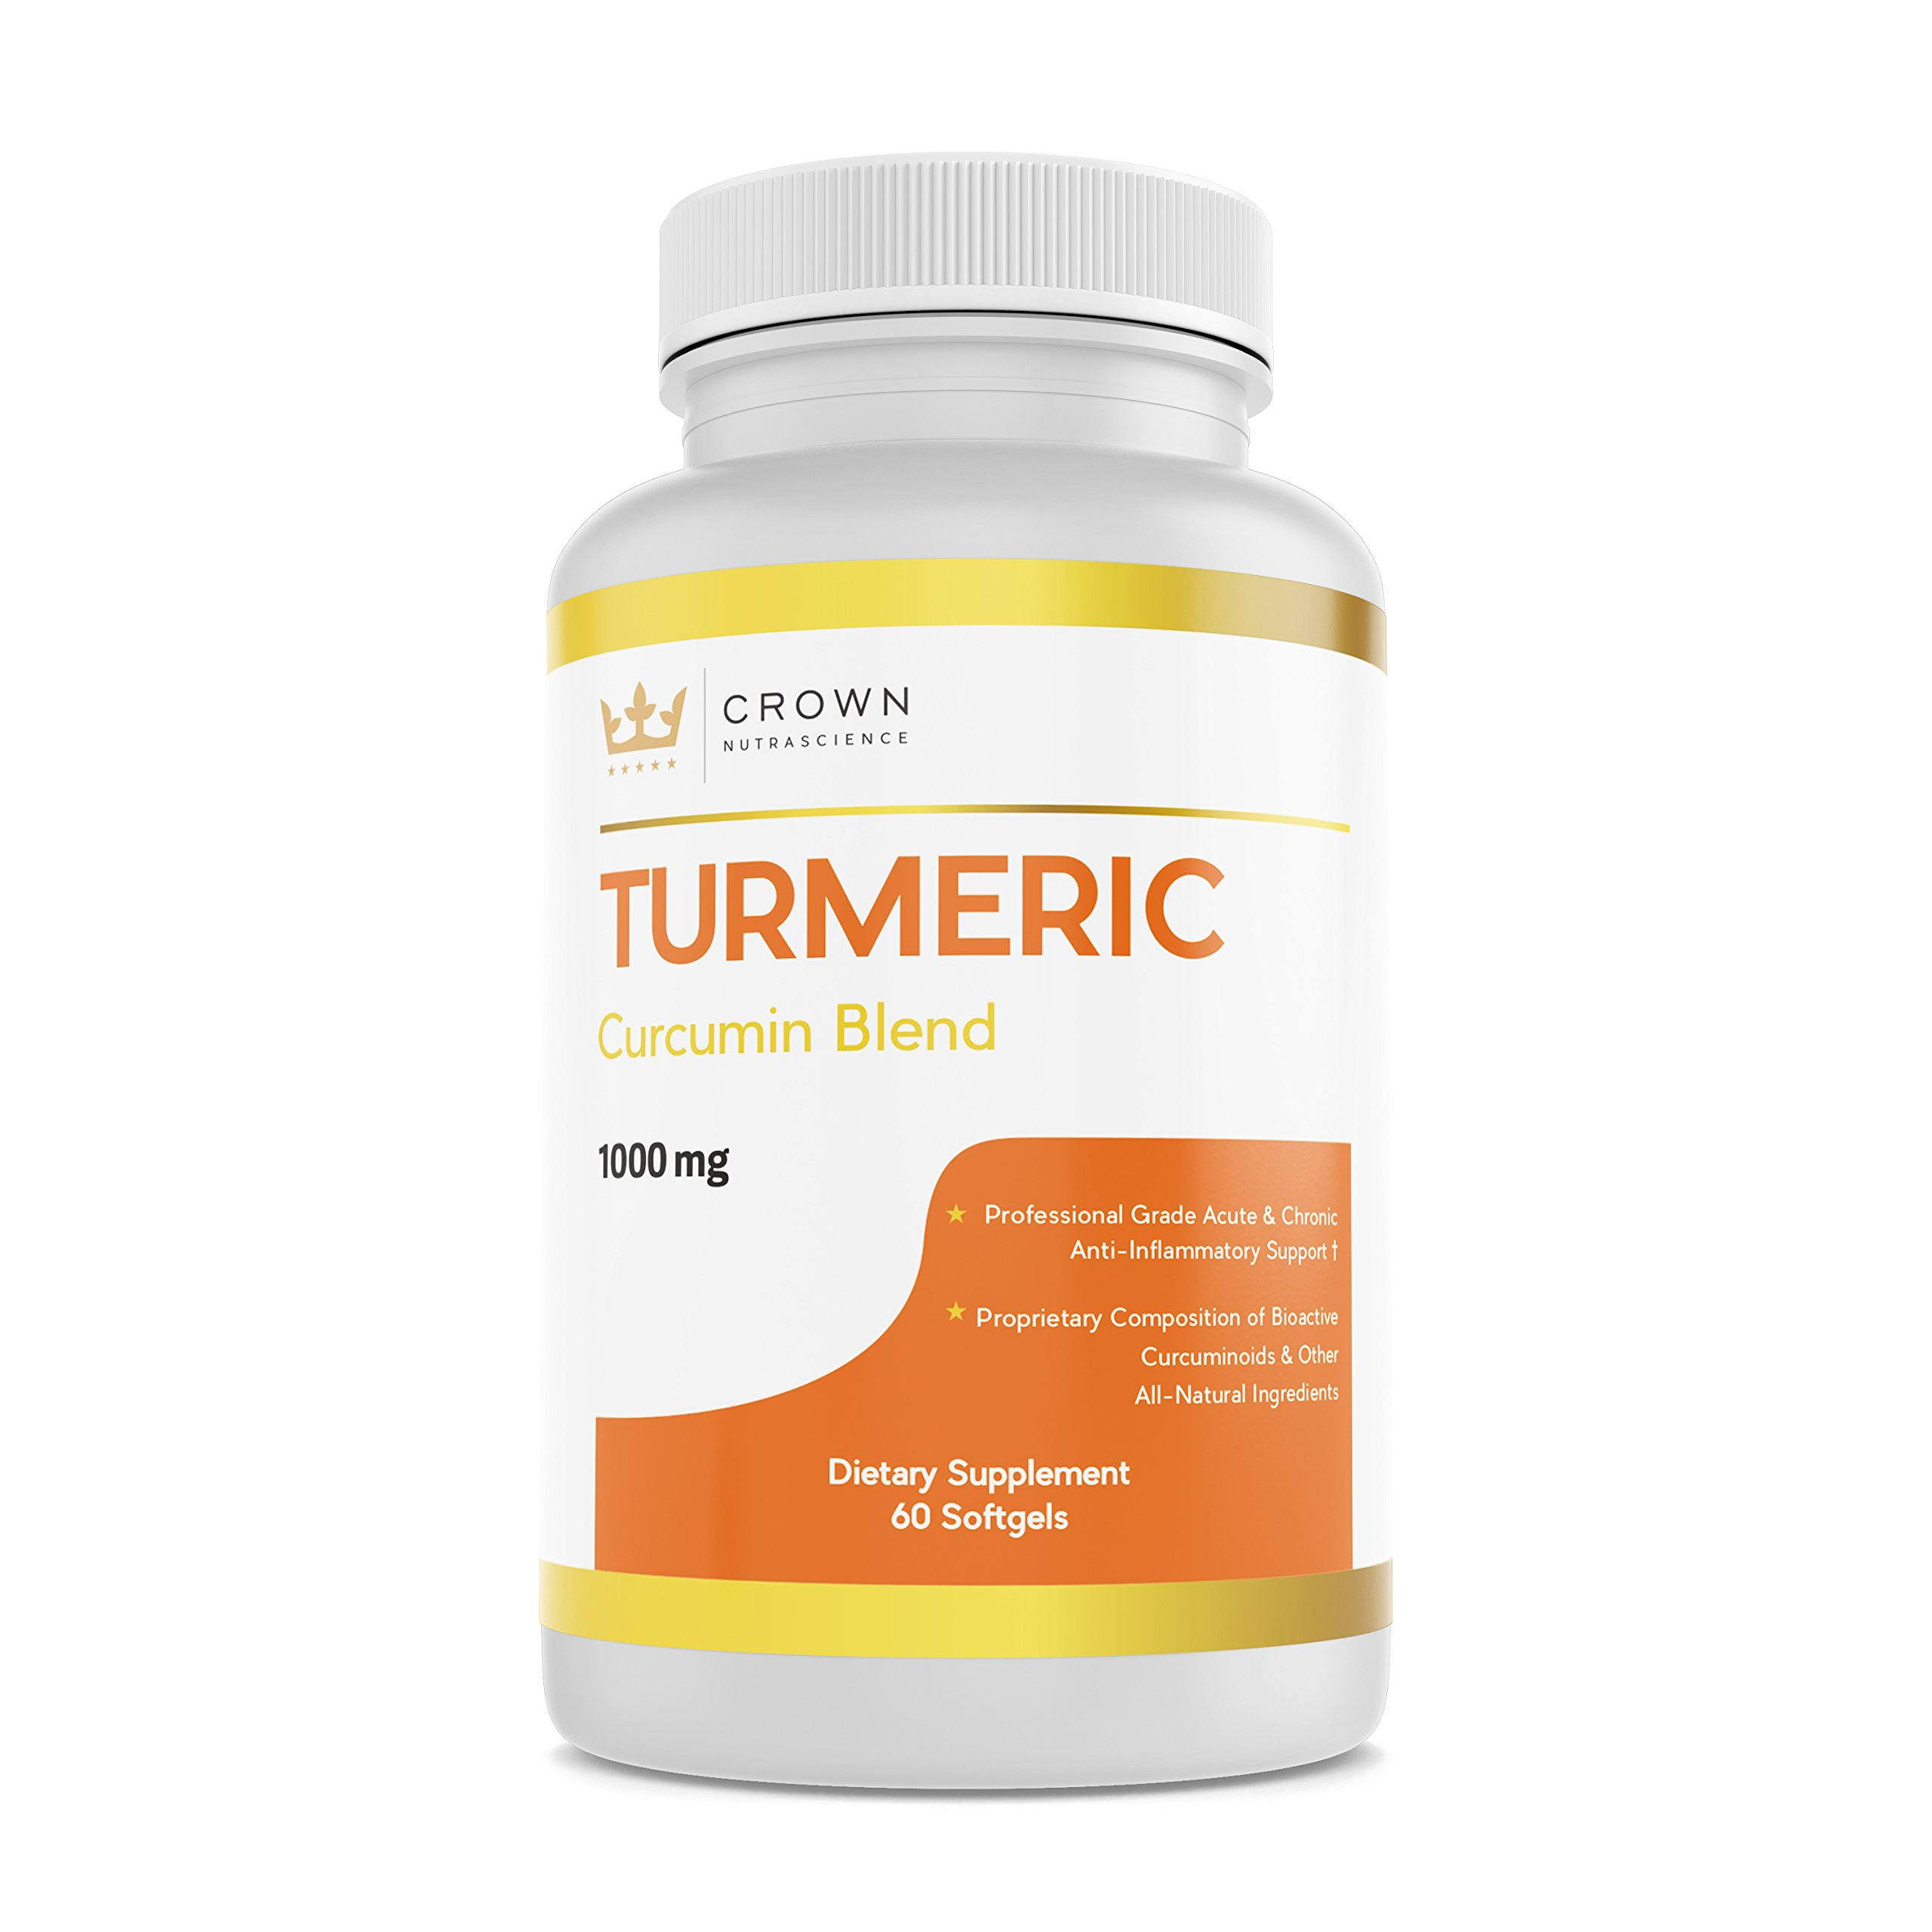 Turmeric Curcumin 1000mg, 60 Softgels, Crown NutraScience - 380mg Turmeric Extracts (Curcuminoid Powder) per Single Softgel, Emulsified for Maximum Absorption, Premium Joint Support & Pain Relief by Crown NutraScience (Image #1)